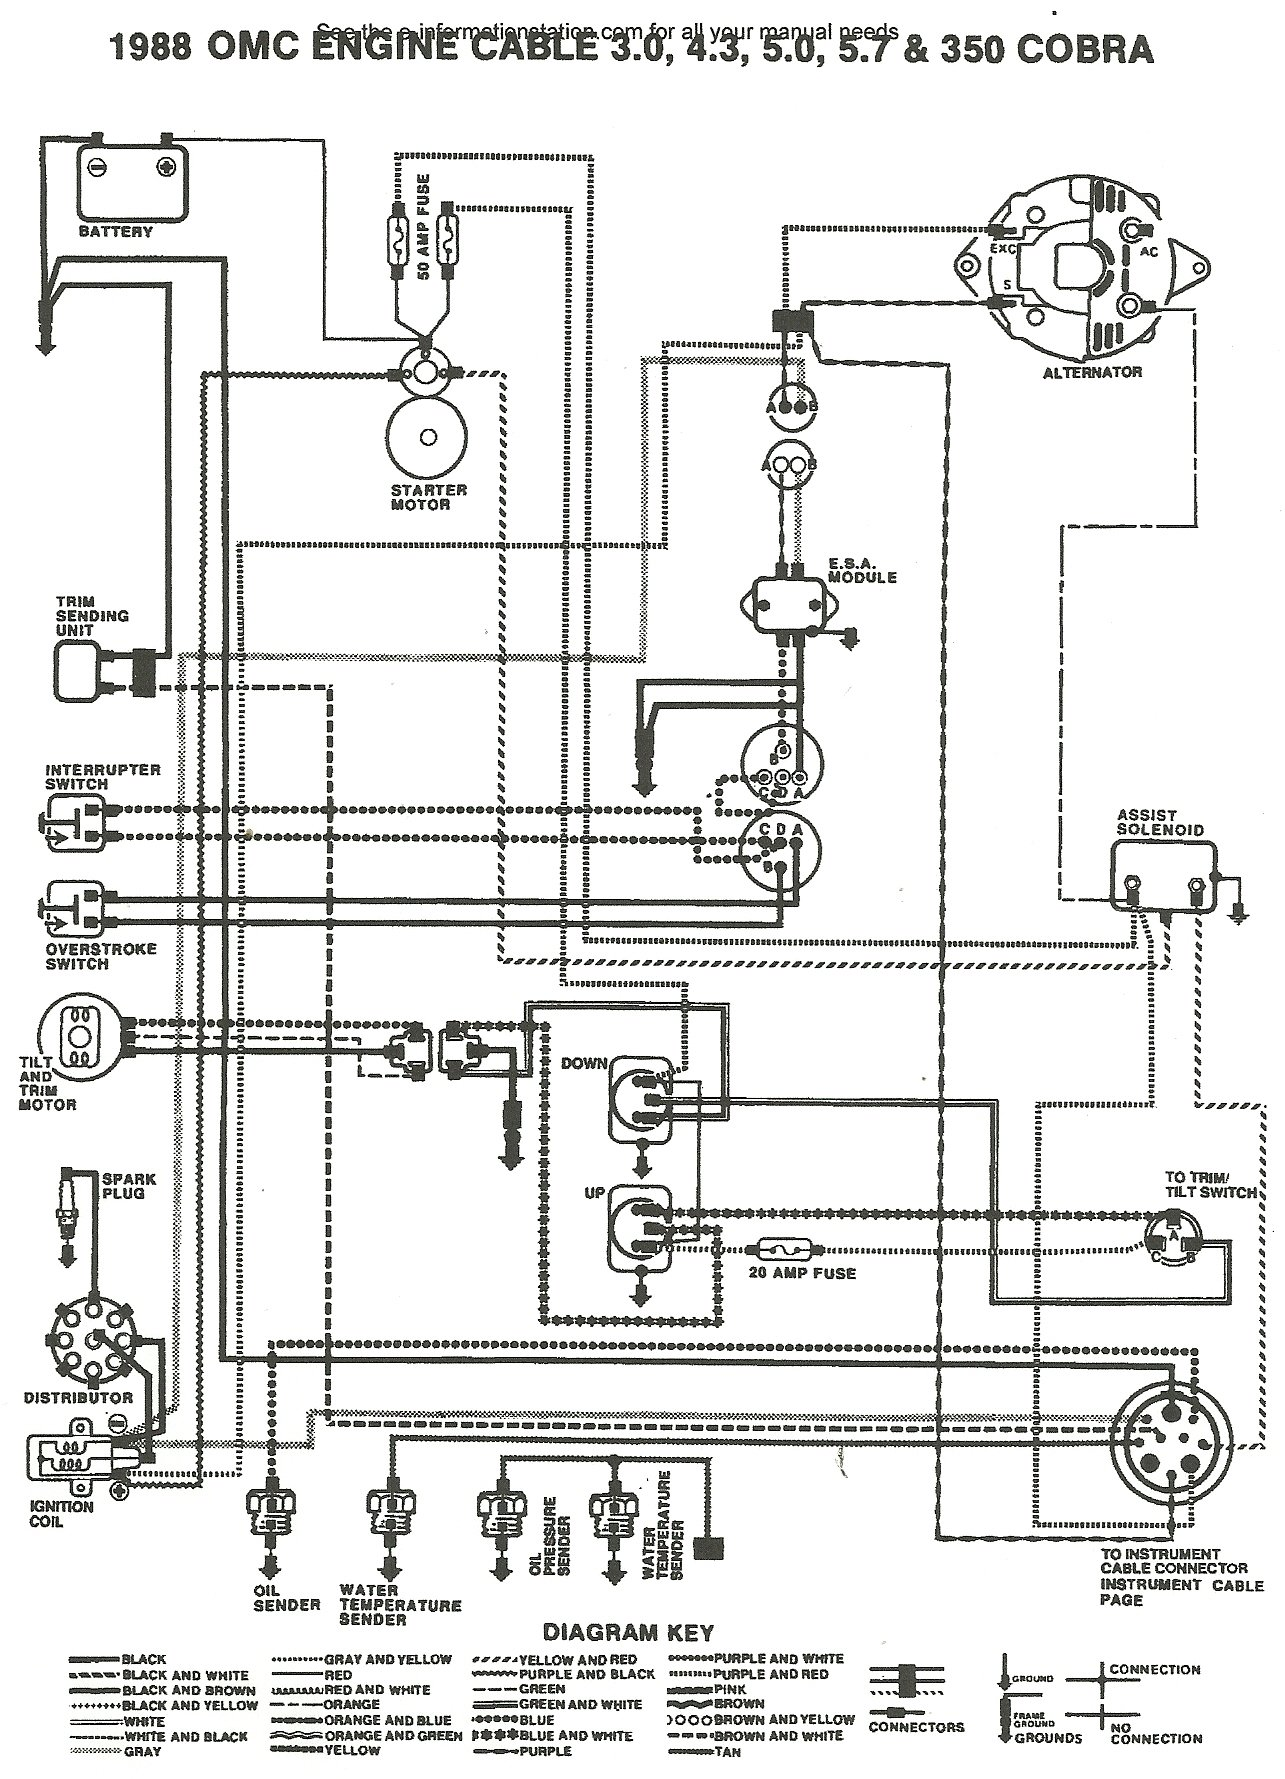 1987 Bayliner Wiring Diagram - Ranger Fuse Box Diagram for Wiring Diagram  Schematics | Bayliner Ignition Wiring Diagram |  | Wiring Diagram Schematics